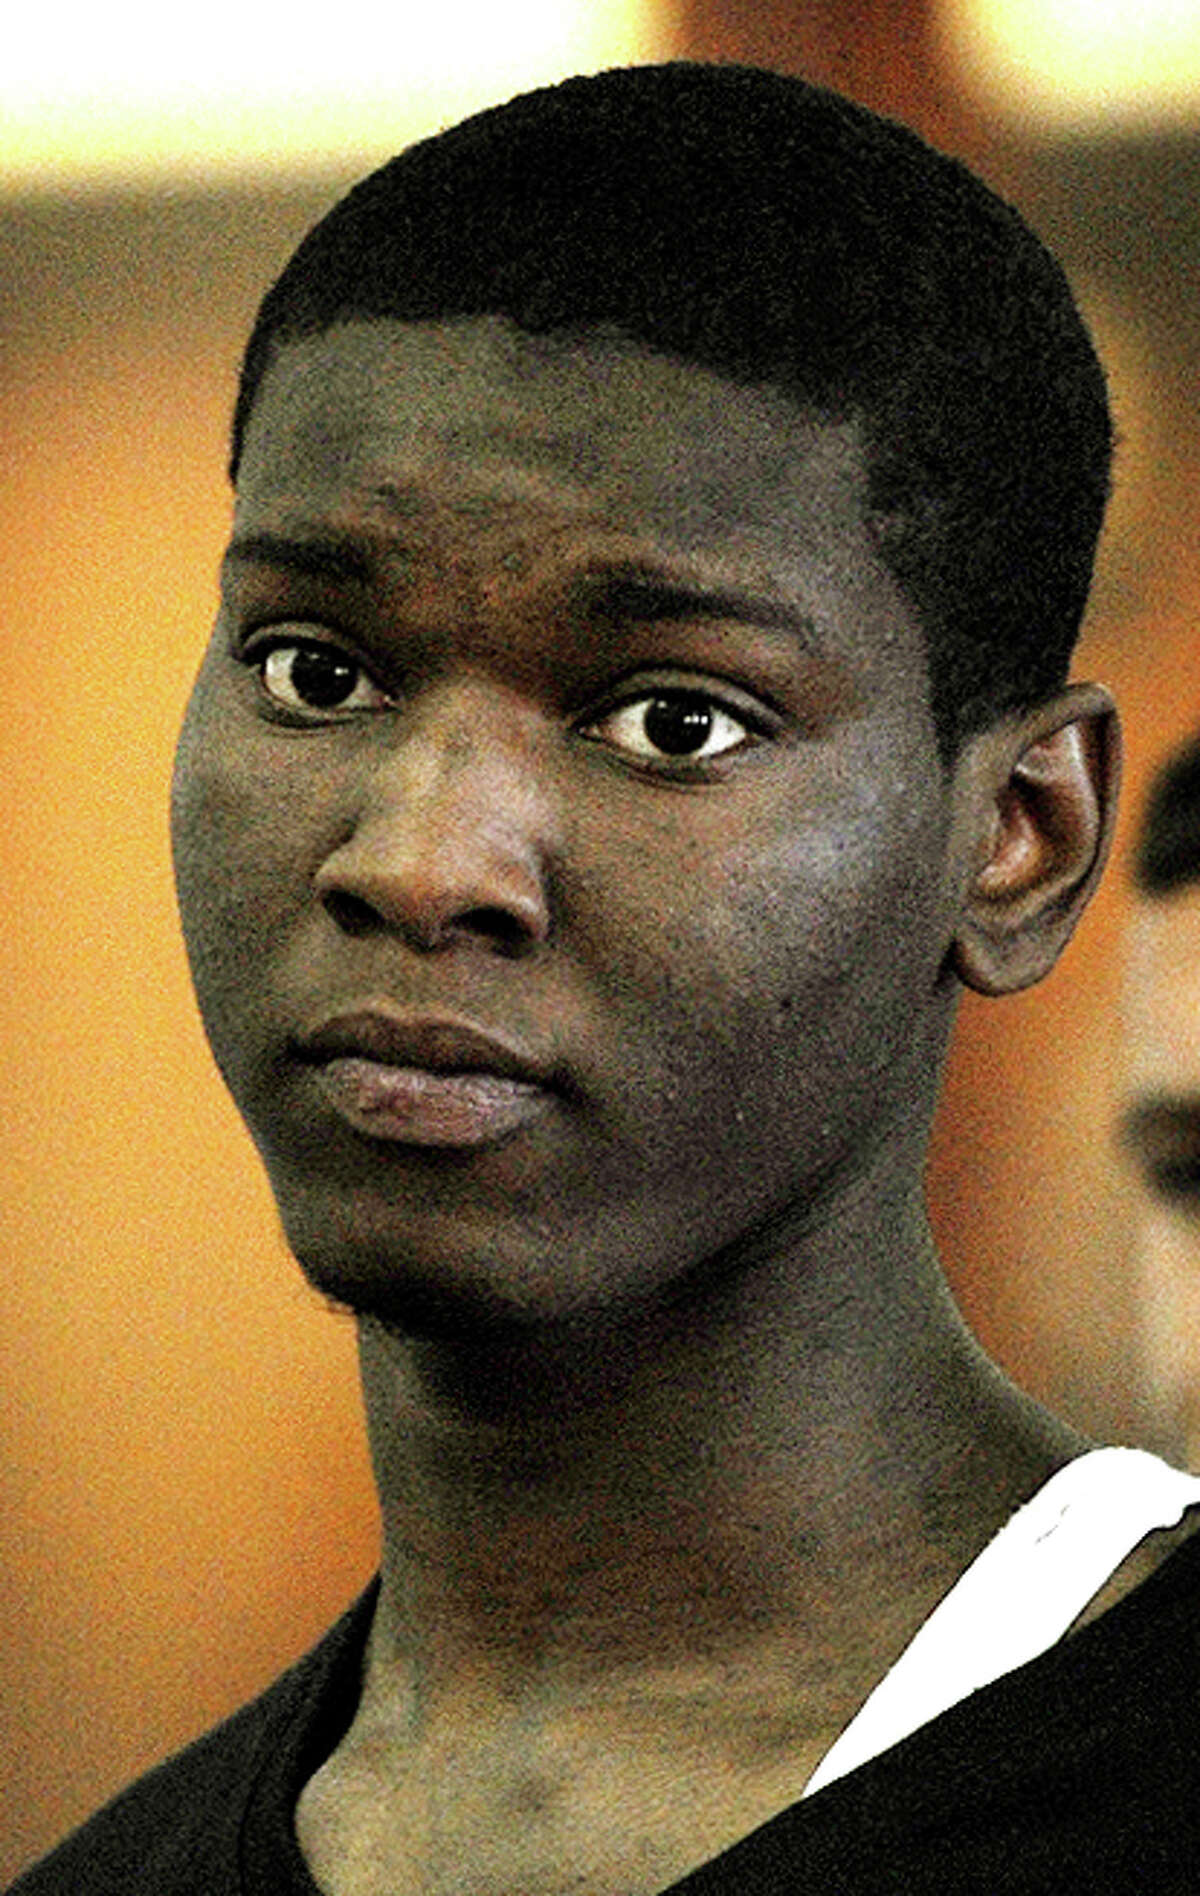 Roderick Rogers, 19, was found guilty of murder, conspiracy to commit murder and four counts of first-degree assault in Bridgeport, Conn. on Monday, Oct. 26, 2015.